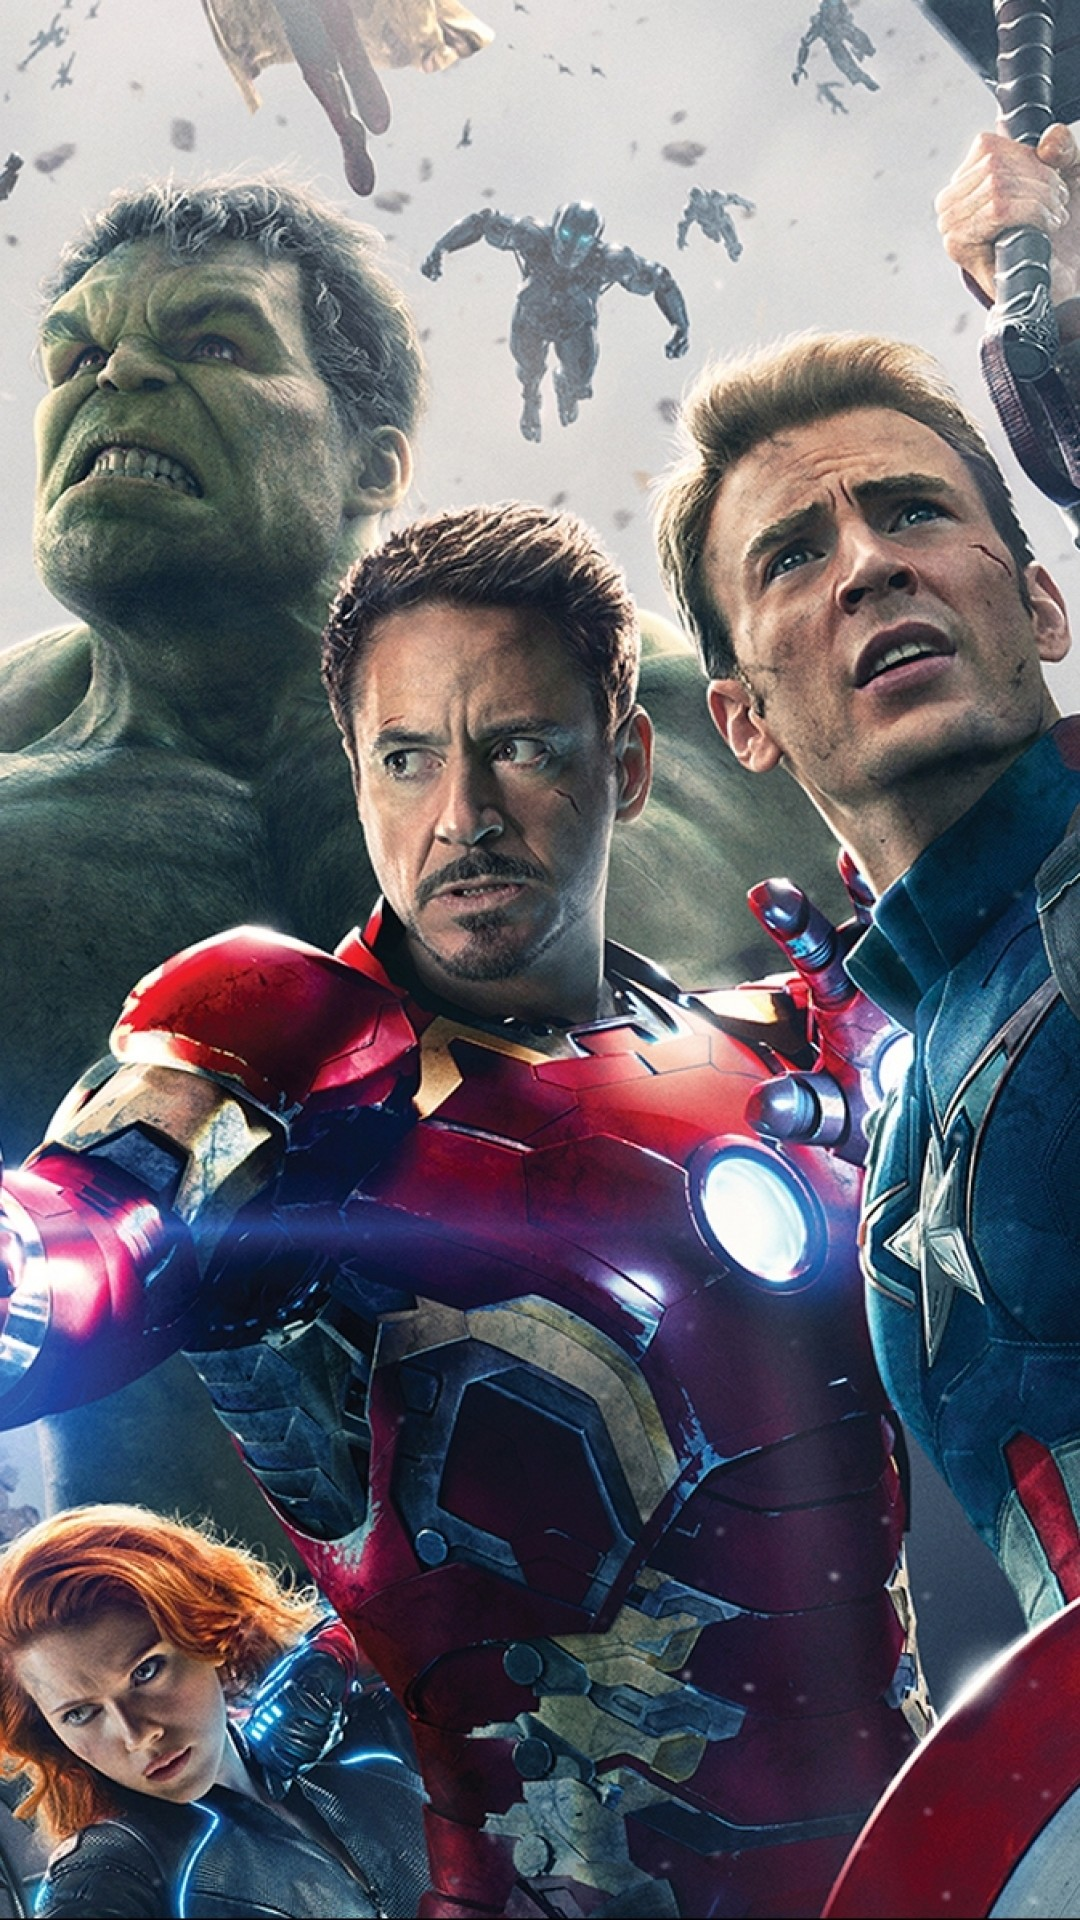 Download HD Wallpapers Of Avengers Group | HD Wallpapers | Pinterest | Hd  wallpaper and Wallpaper